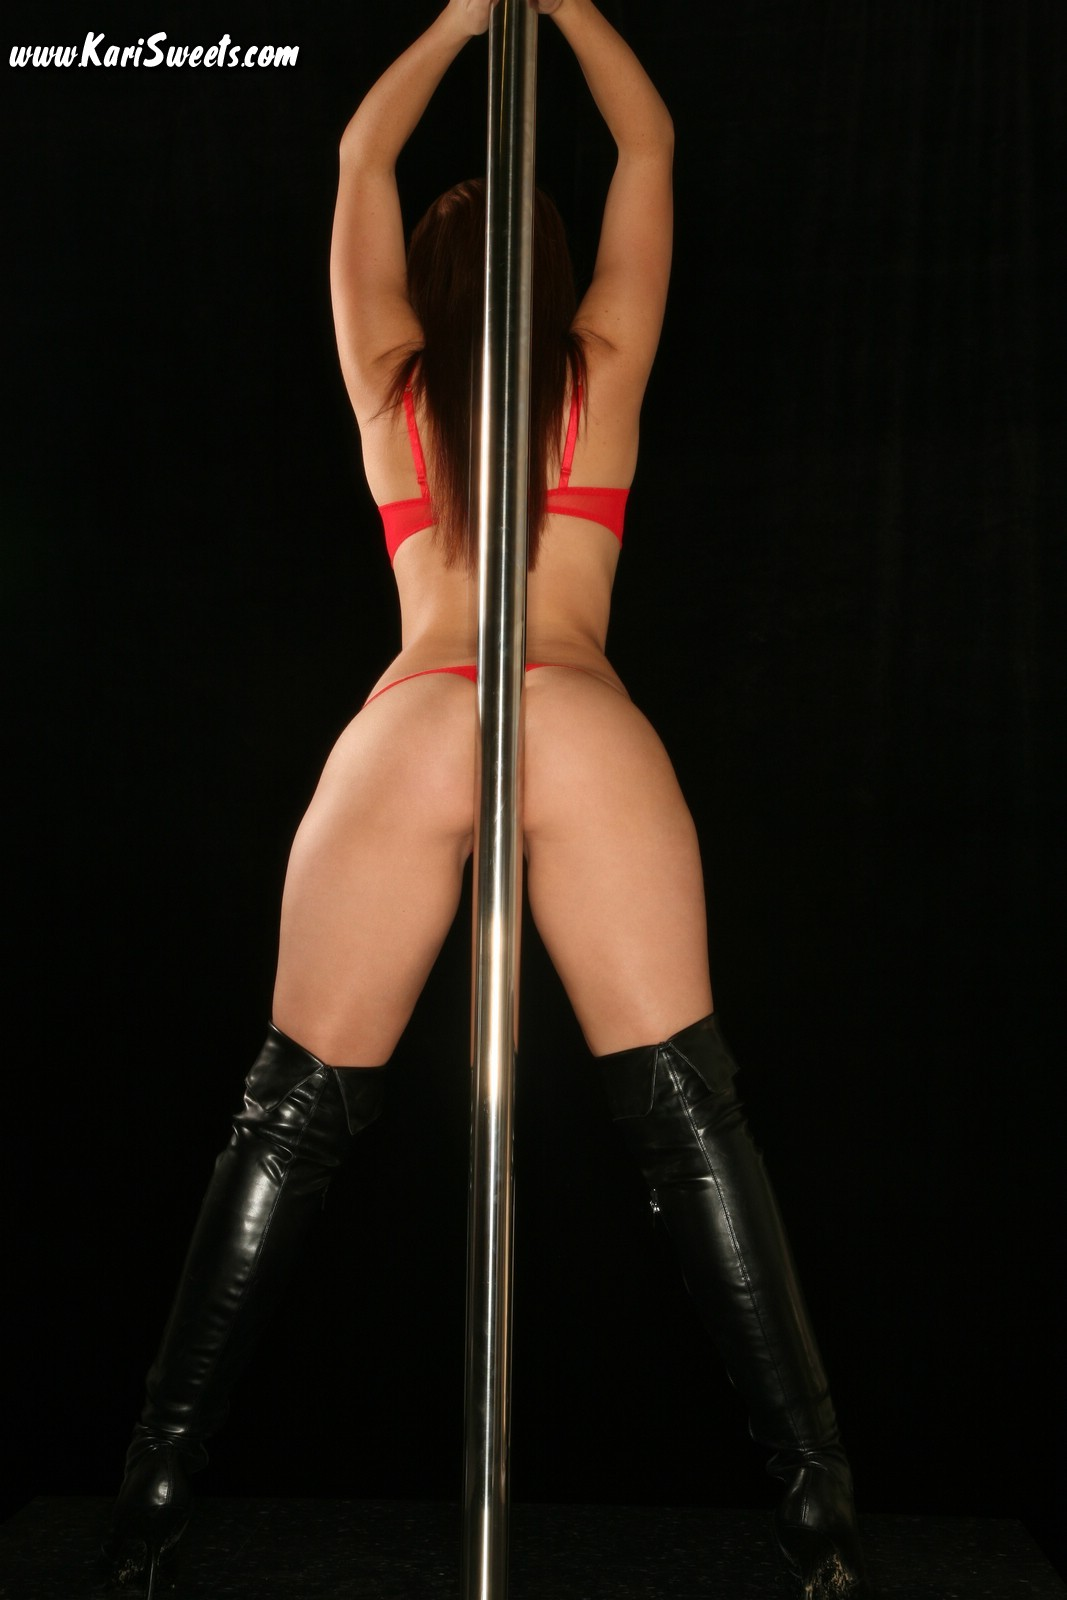 stripers naked on pole